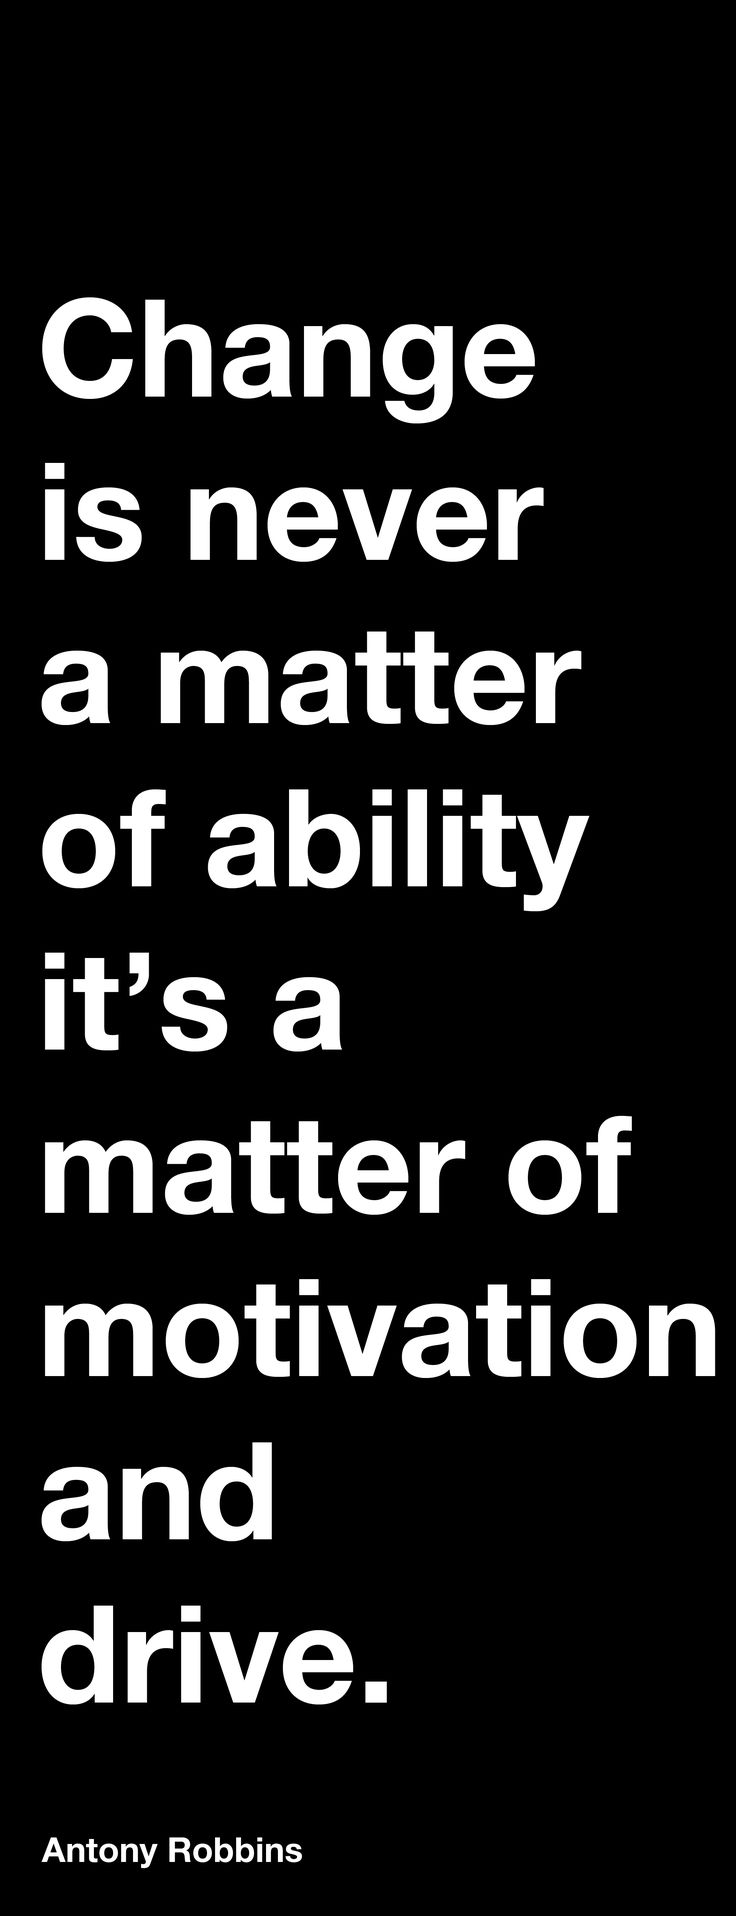 Change is never a matter of ability its a matter of motivation and drive. Anthony Robbins